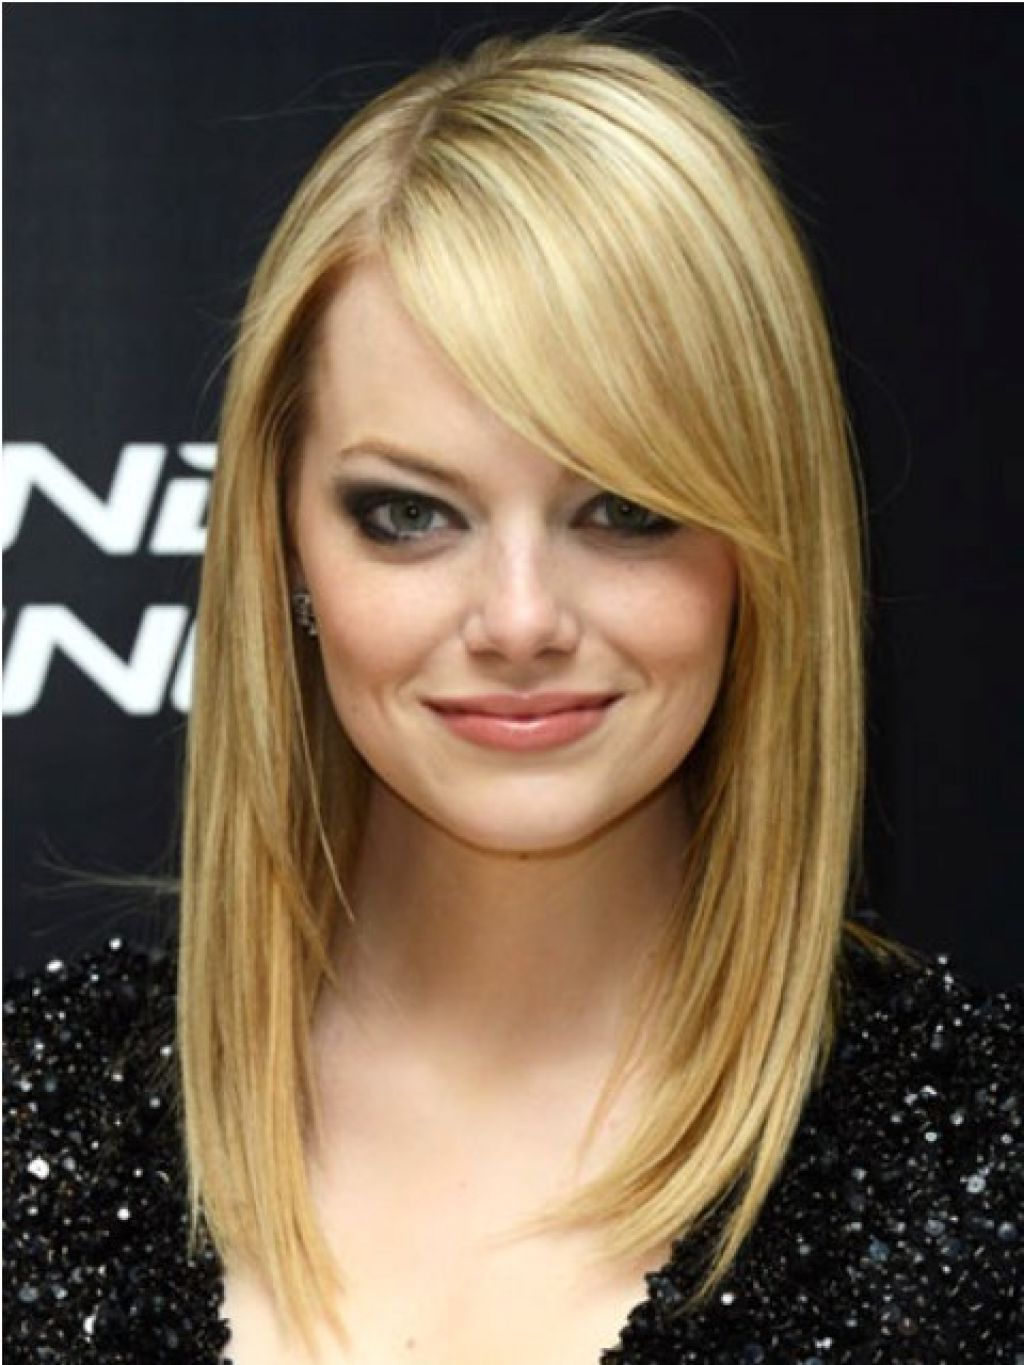 11 Unique And Different Hairstyles For Girls For A Head Turning Intended For Trendy Side Fringe Medium Hairstyles (Gallery 1 of 20)